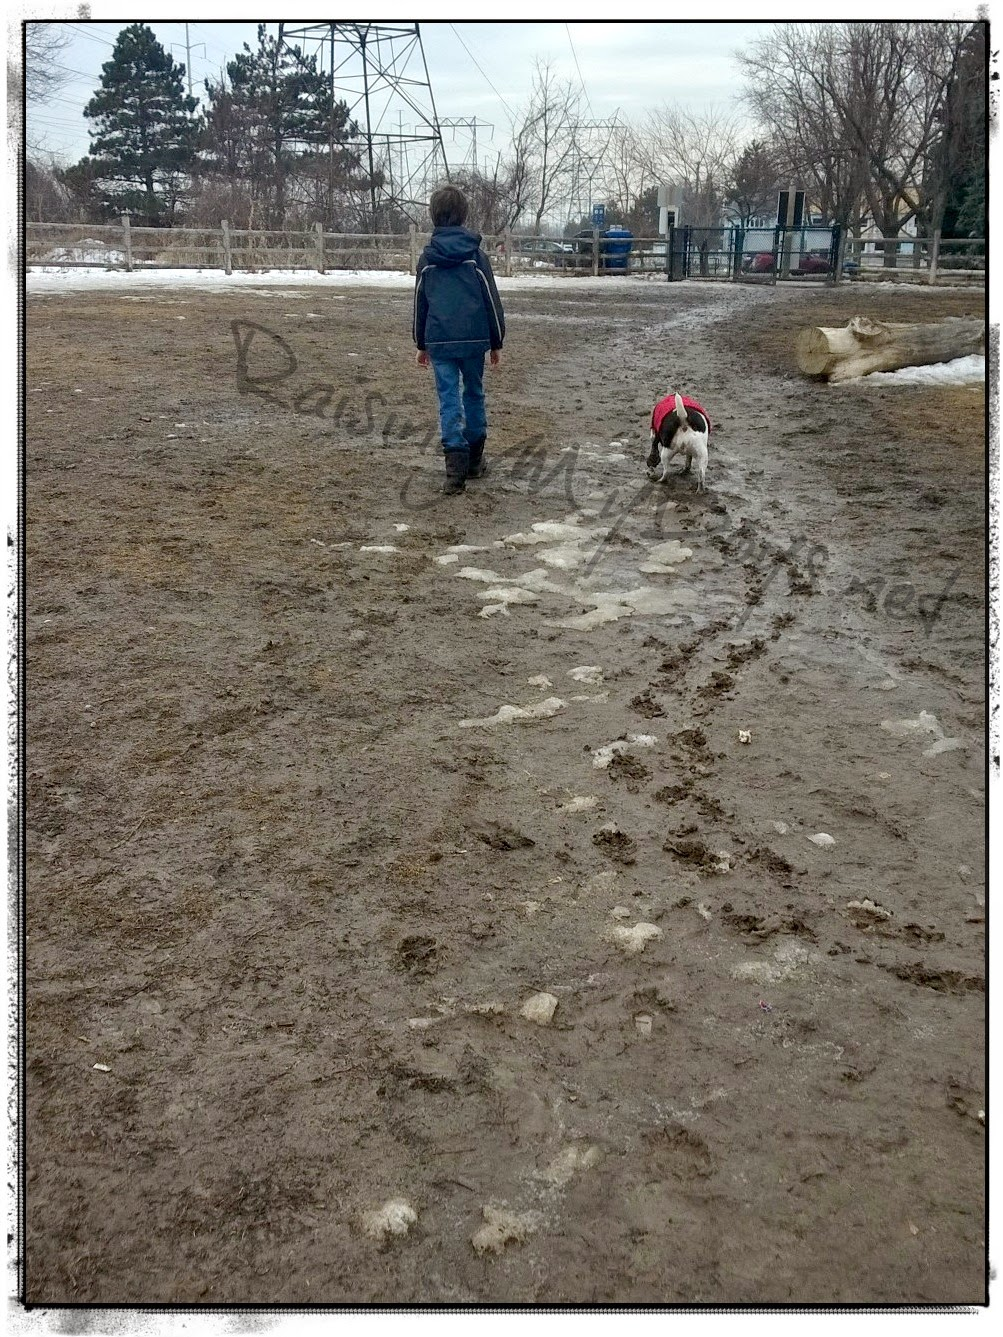 boy and dog walking in muddy field